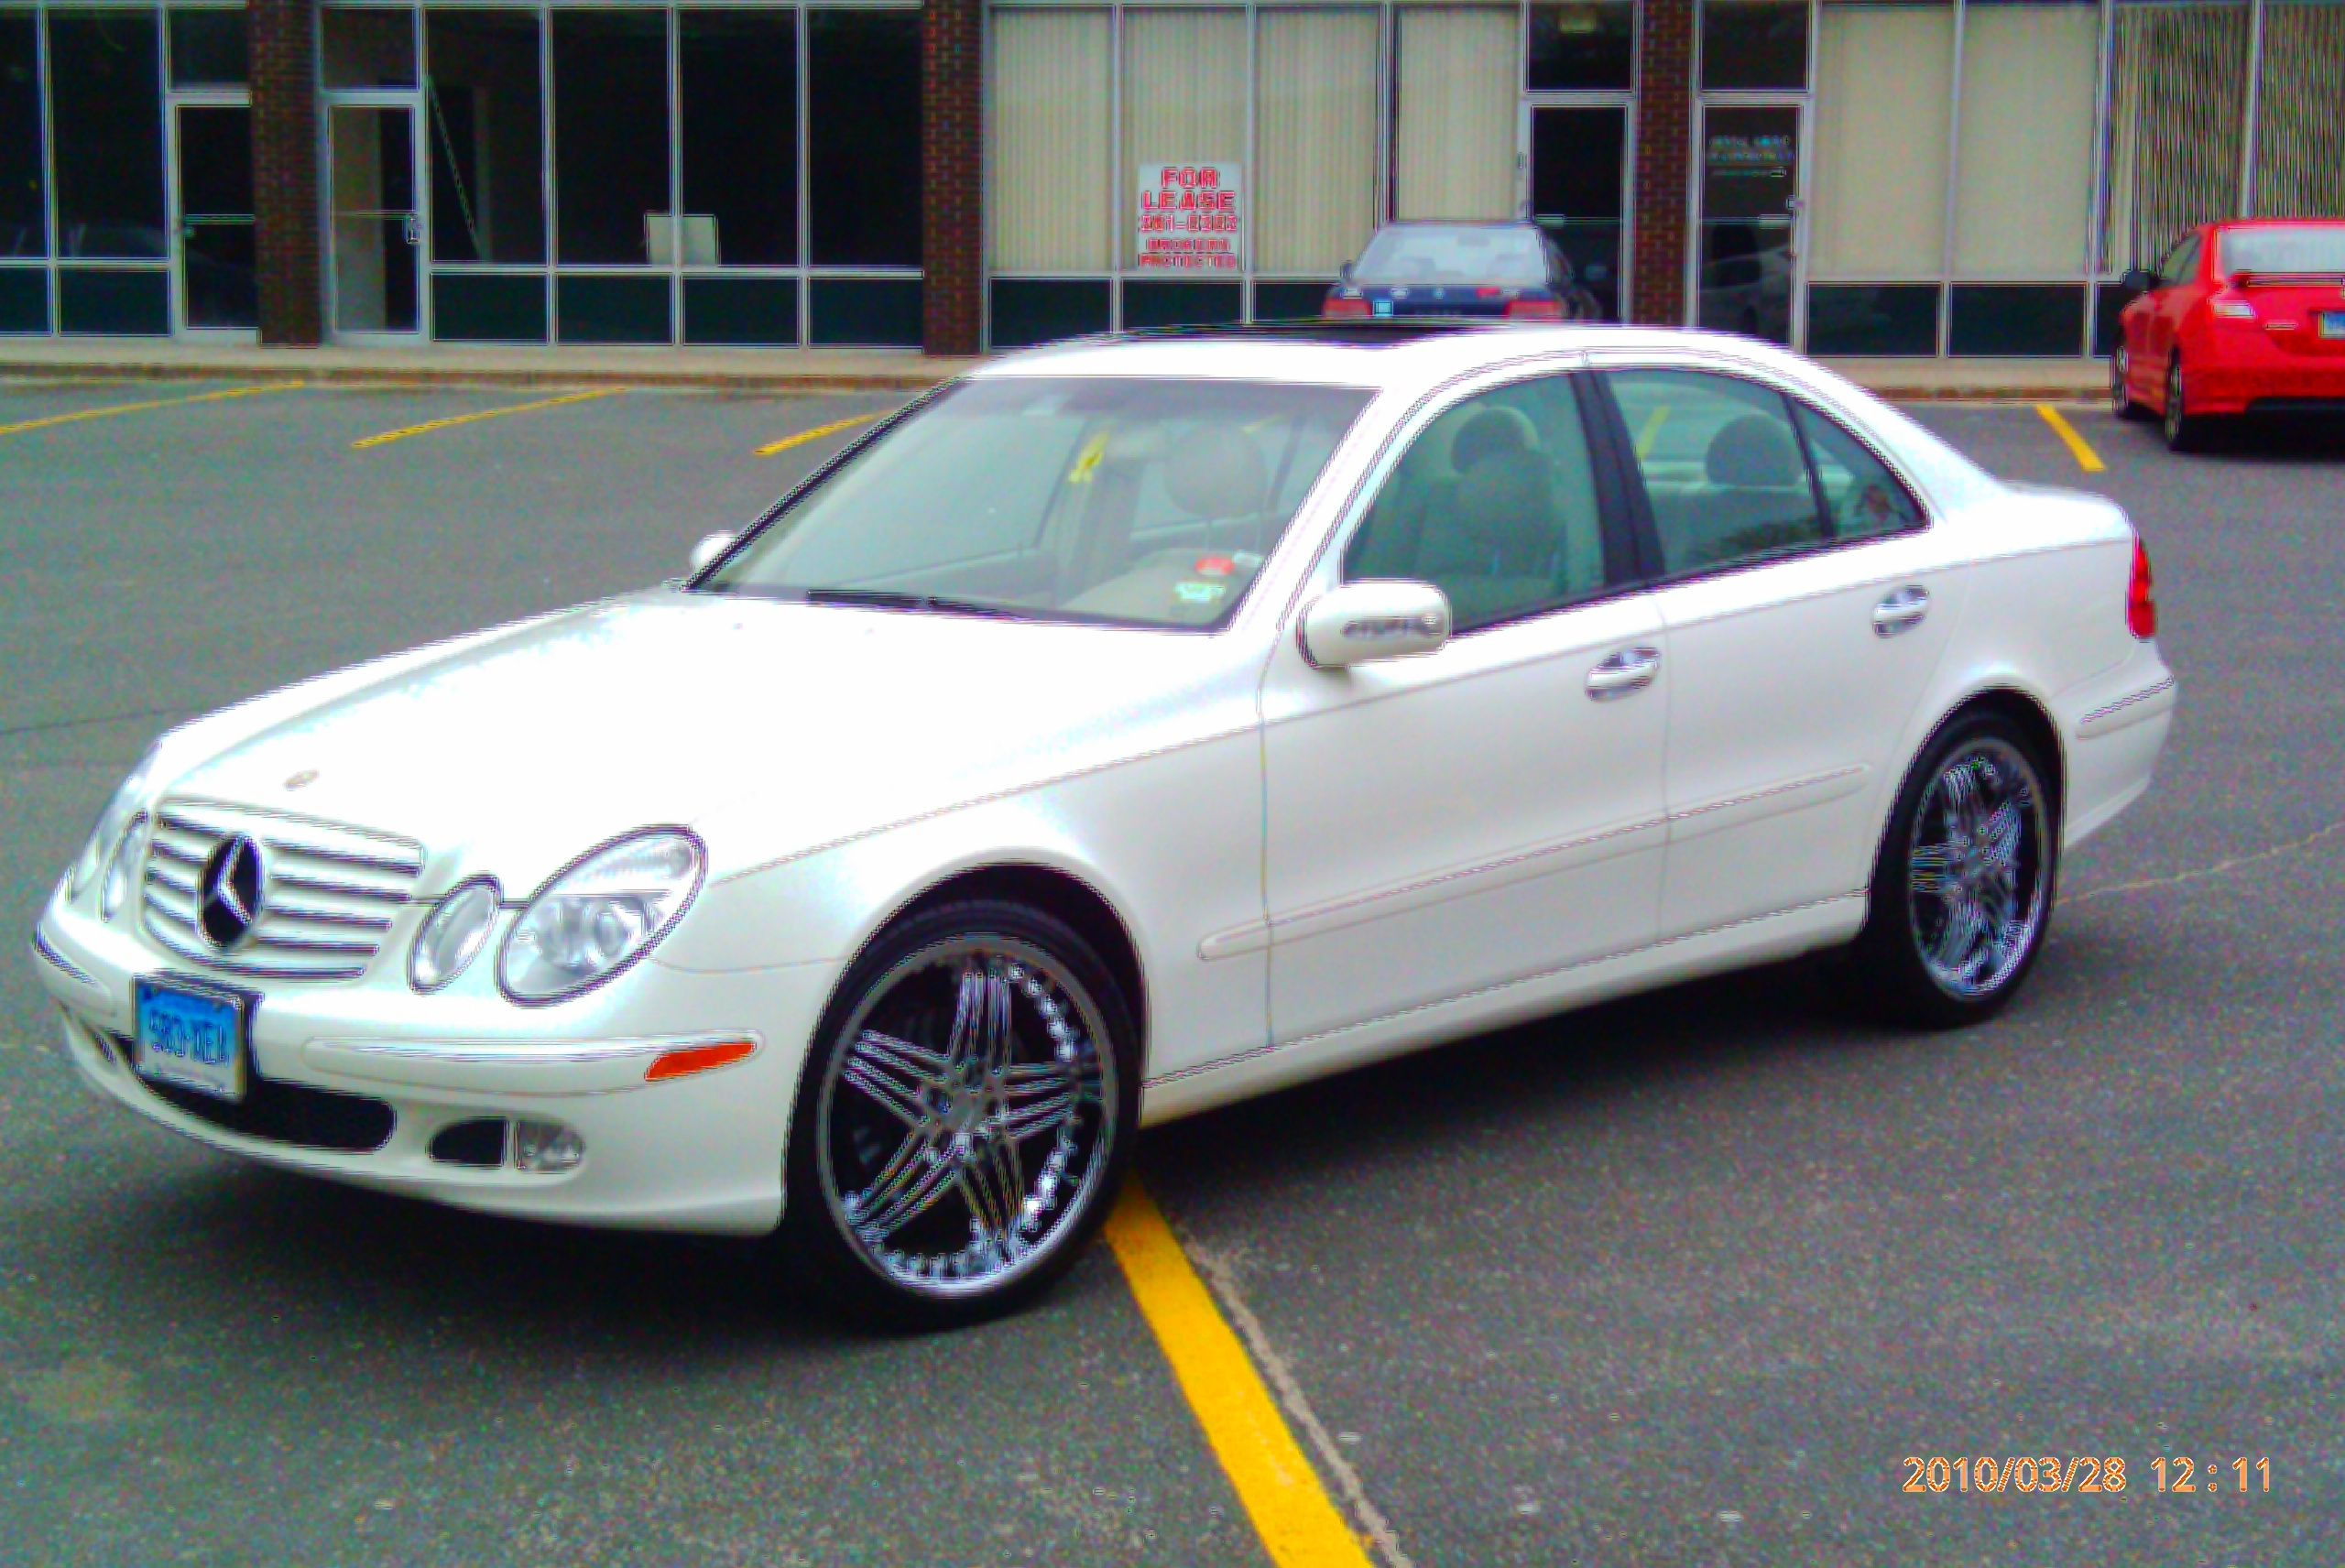 Buckwild196 39 s 2004 mercedes benz e class in bridgeport ct for Mercedes benz e class 2004